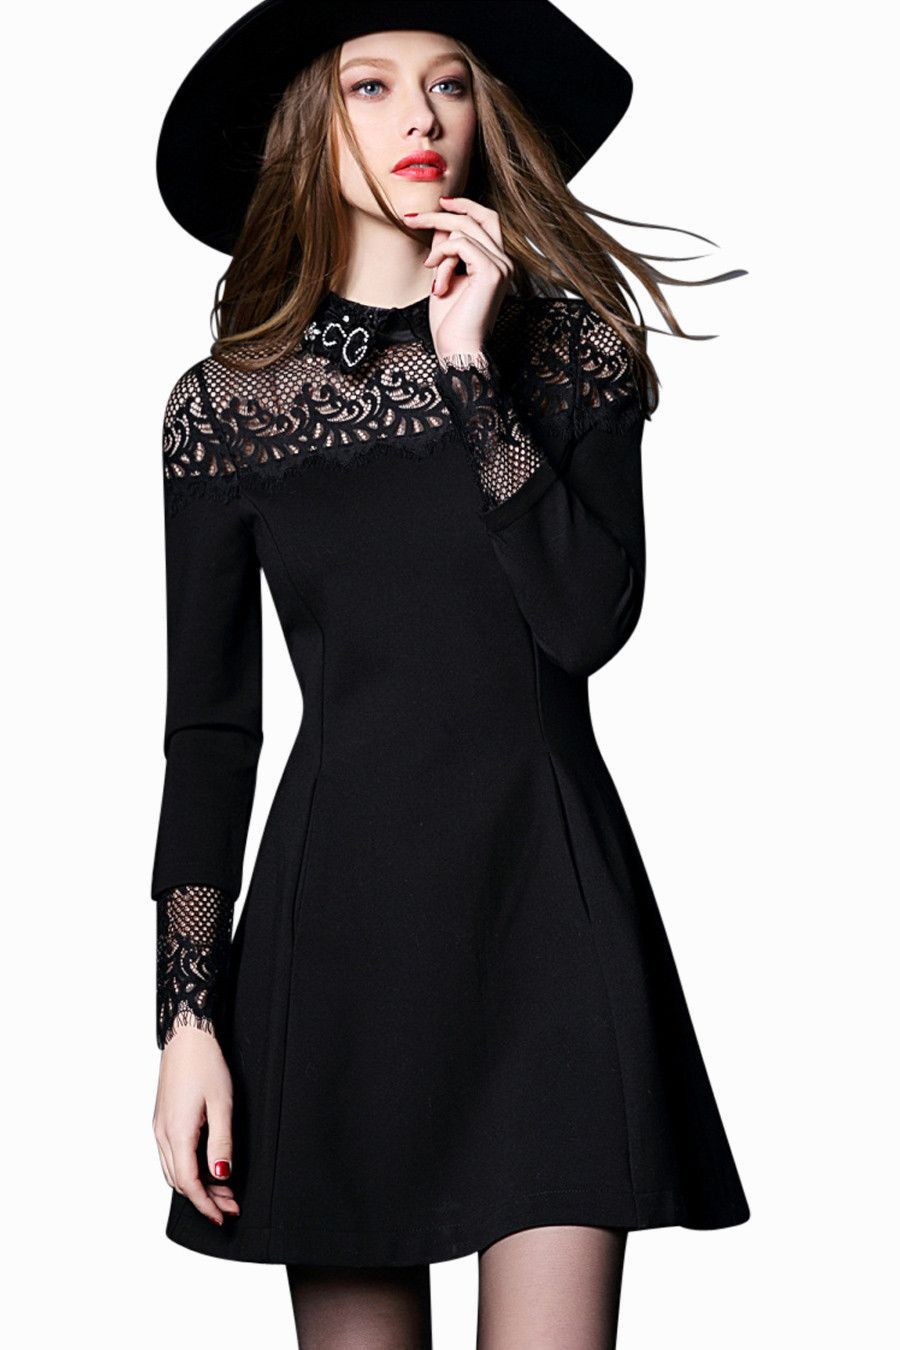 Black lace long sleeve aline dress Мода pinterest black laces